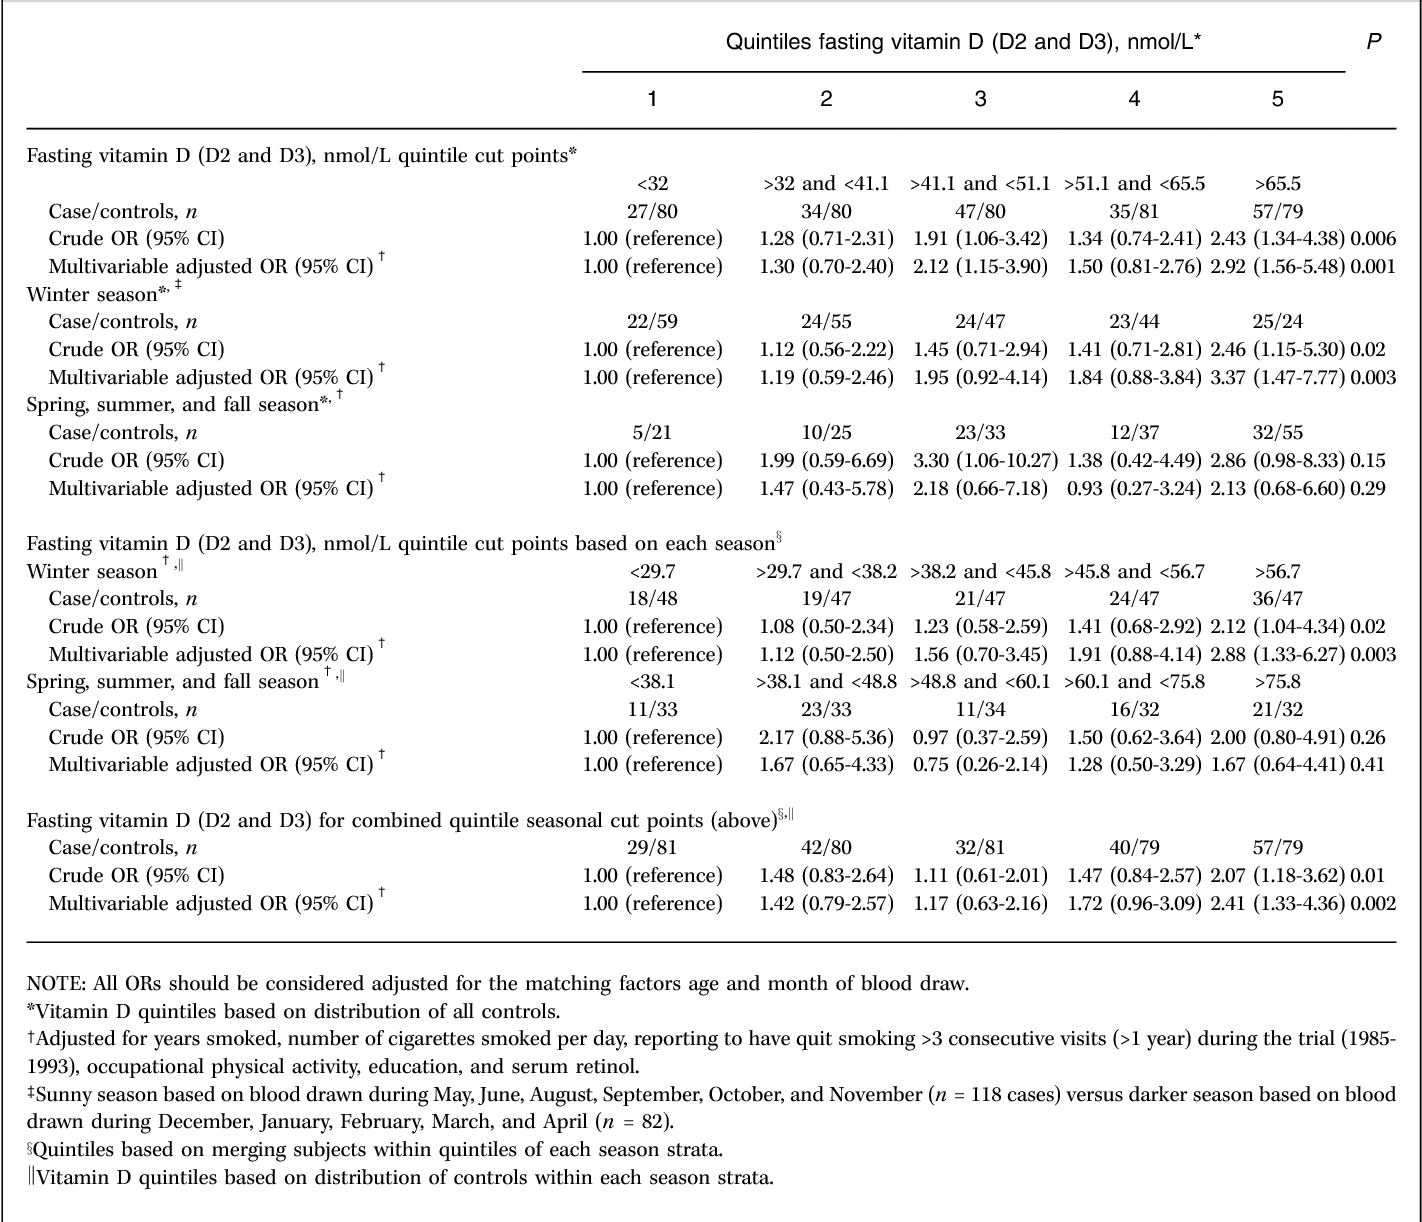 A prospective nested case-control study of vitamin D status